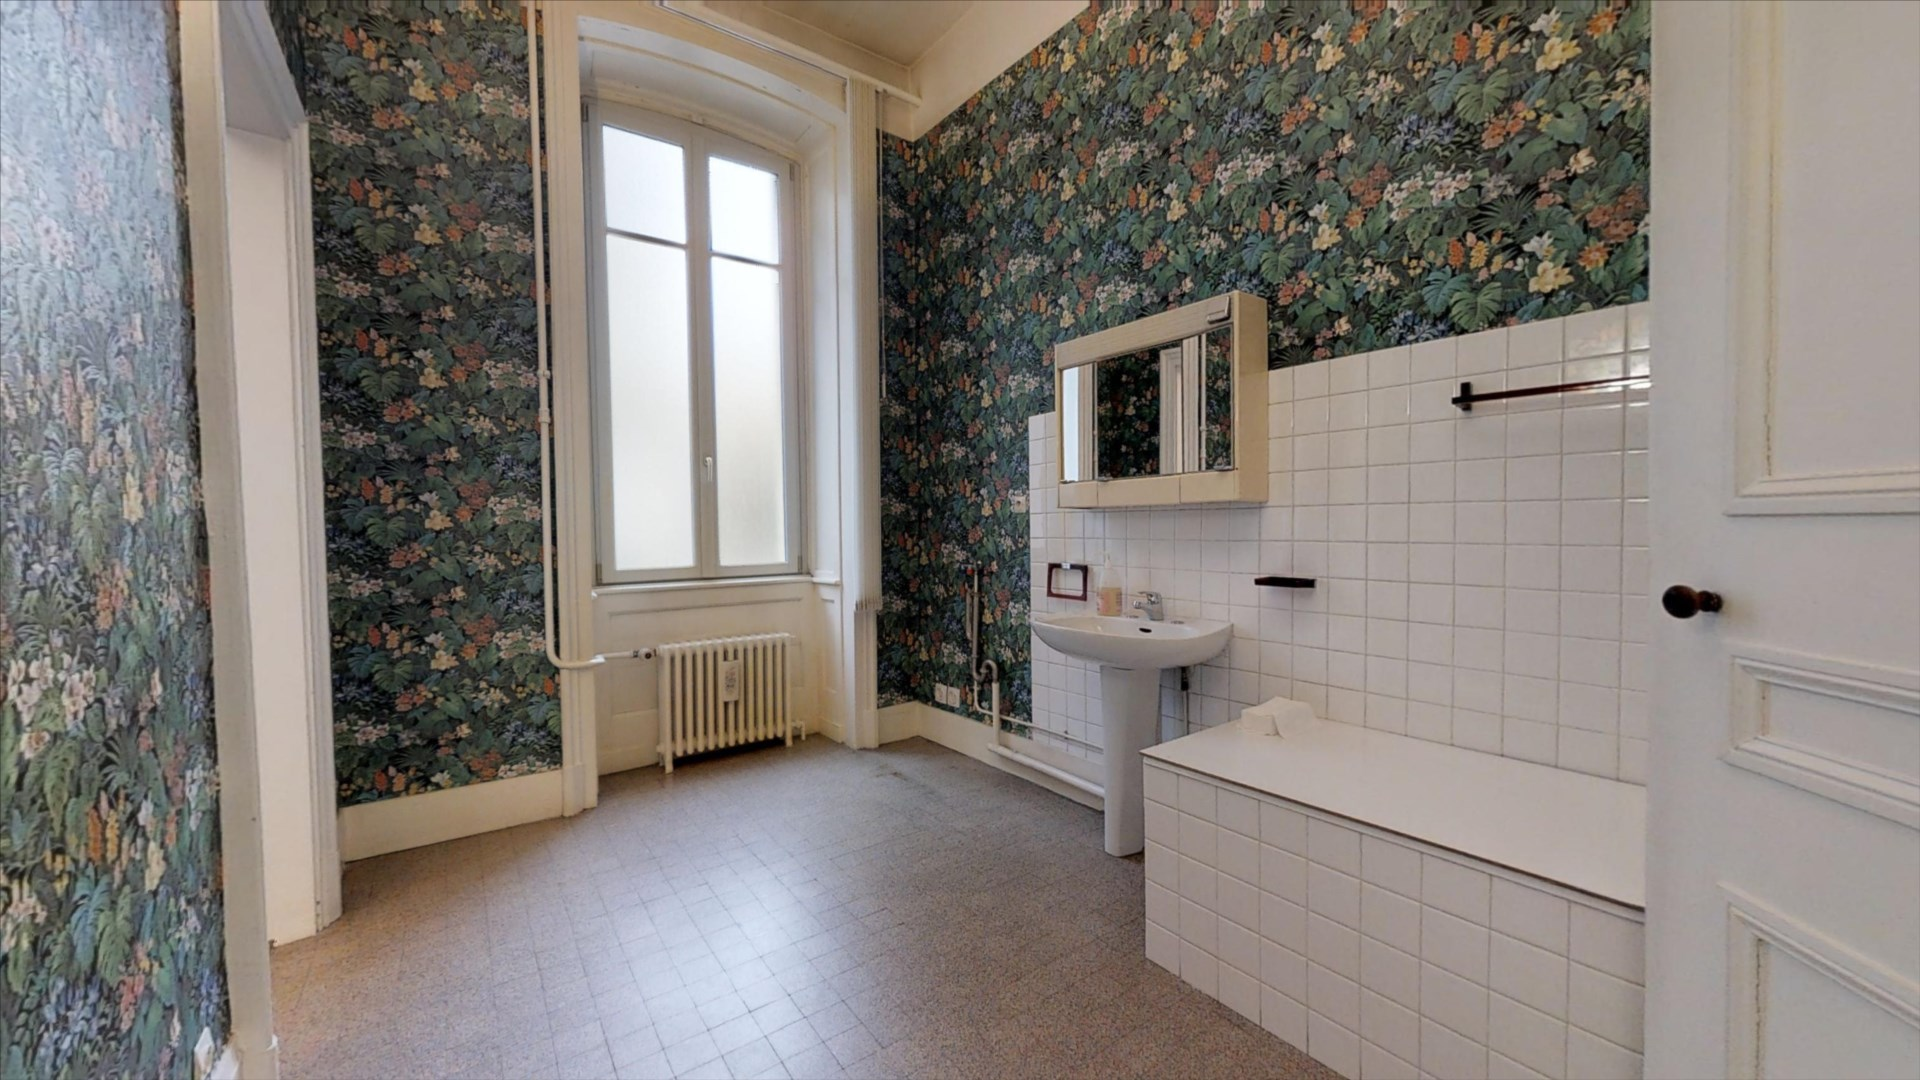 local_professionnel 142.23m² BESANCON - photo 11